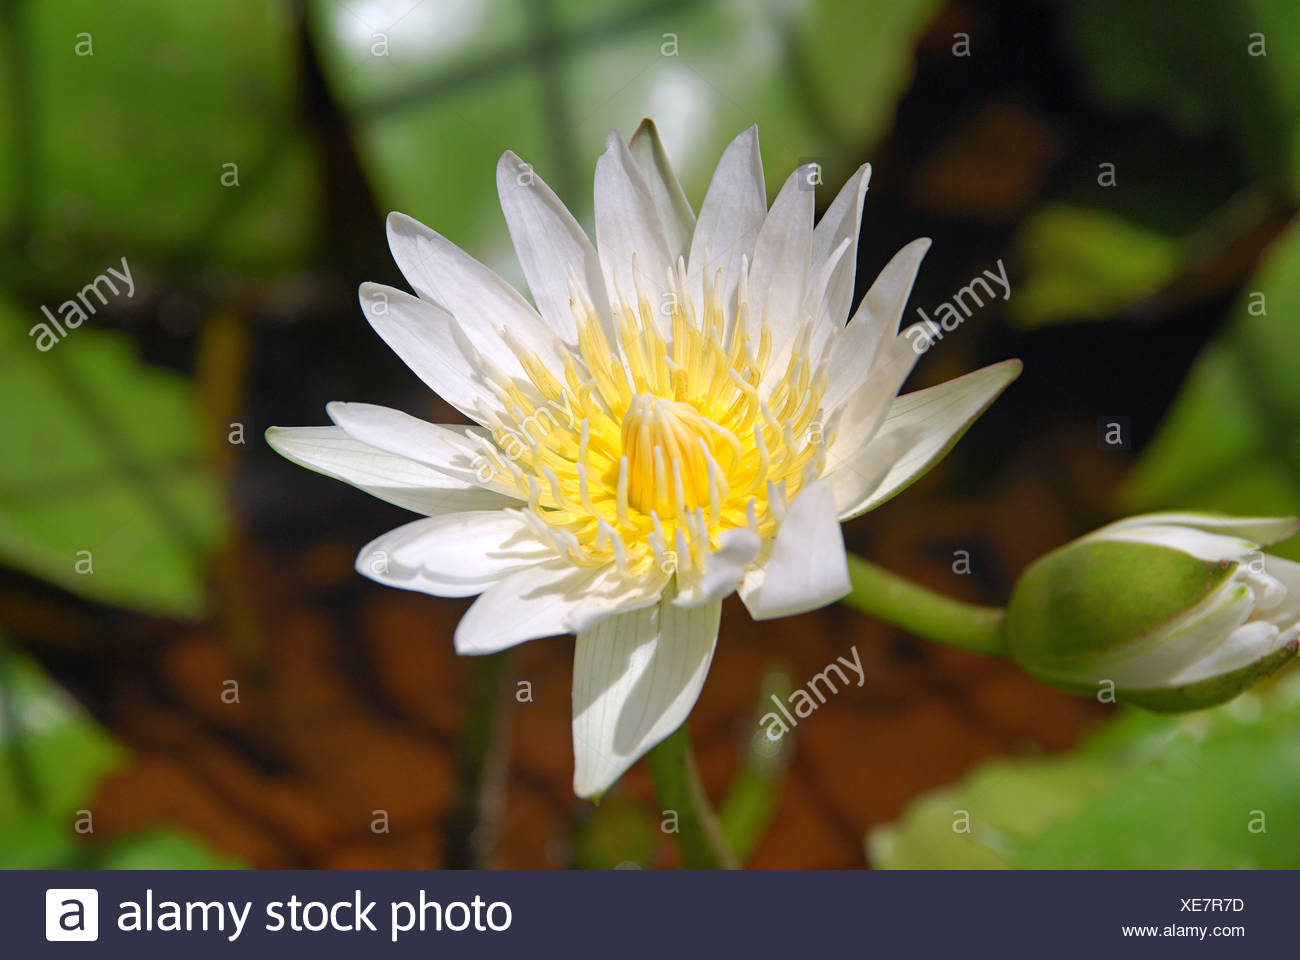 White Lotus Or Nymphaea Lotus Lotus Flower Is The National Flower